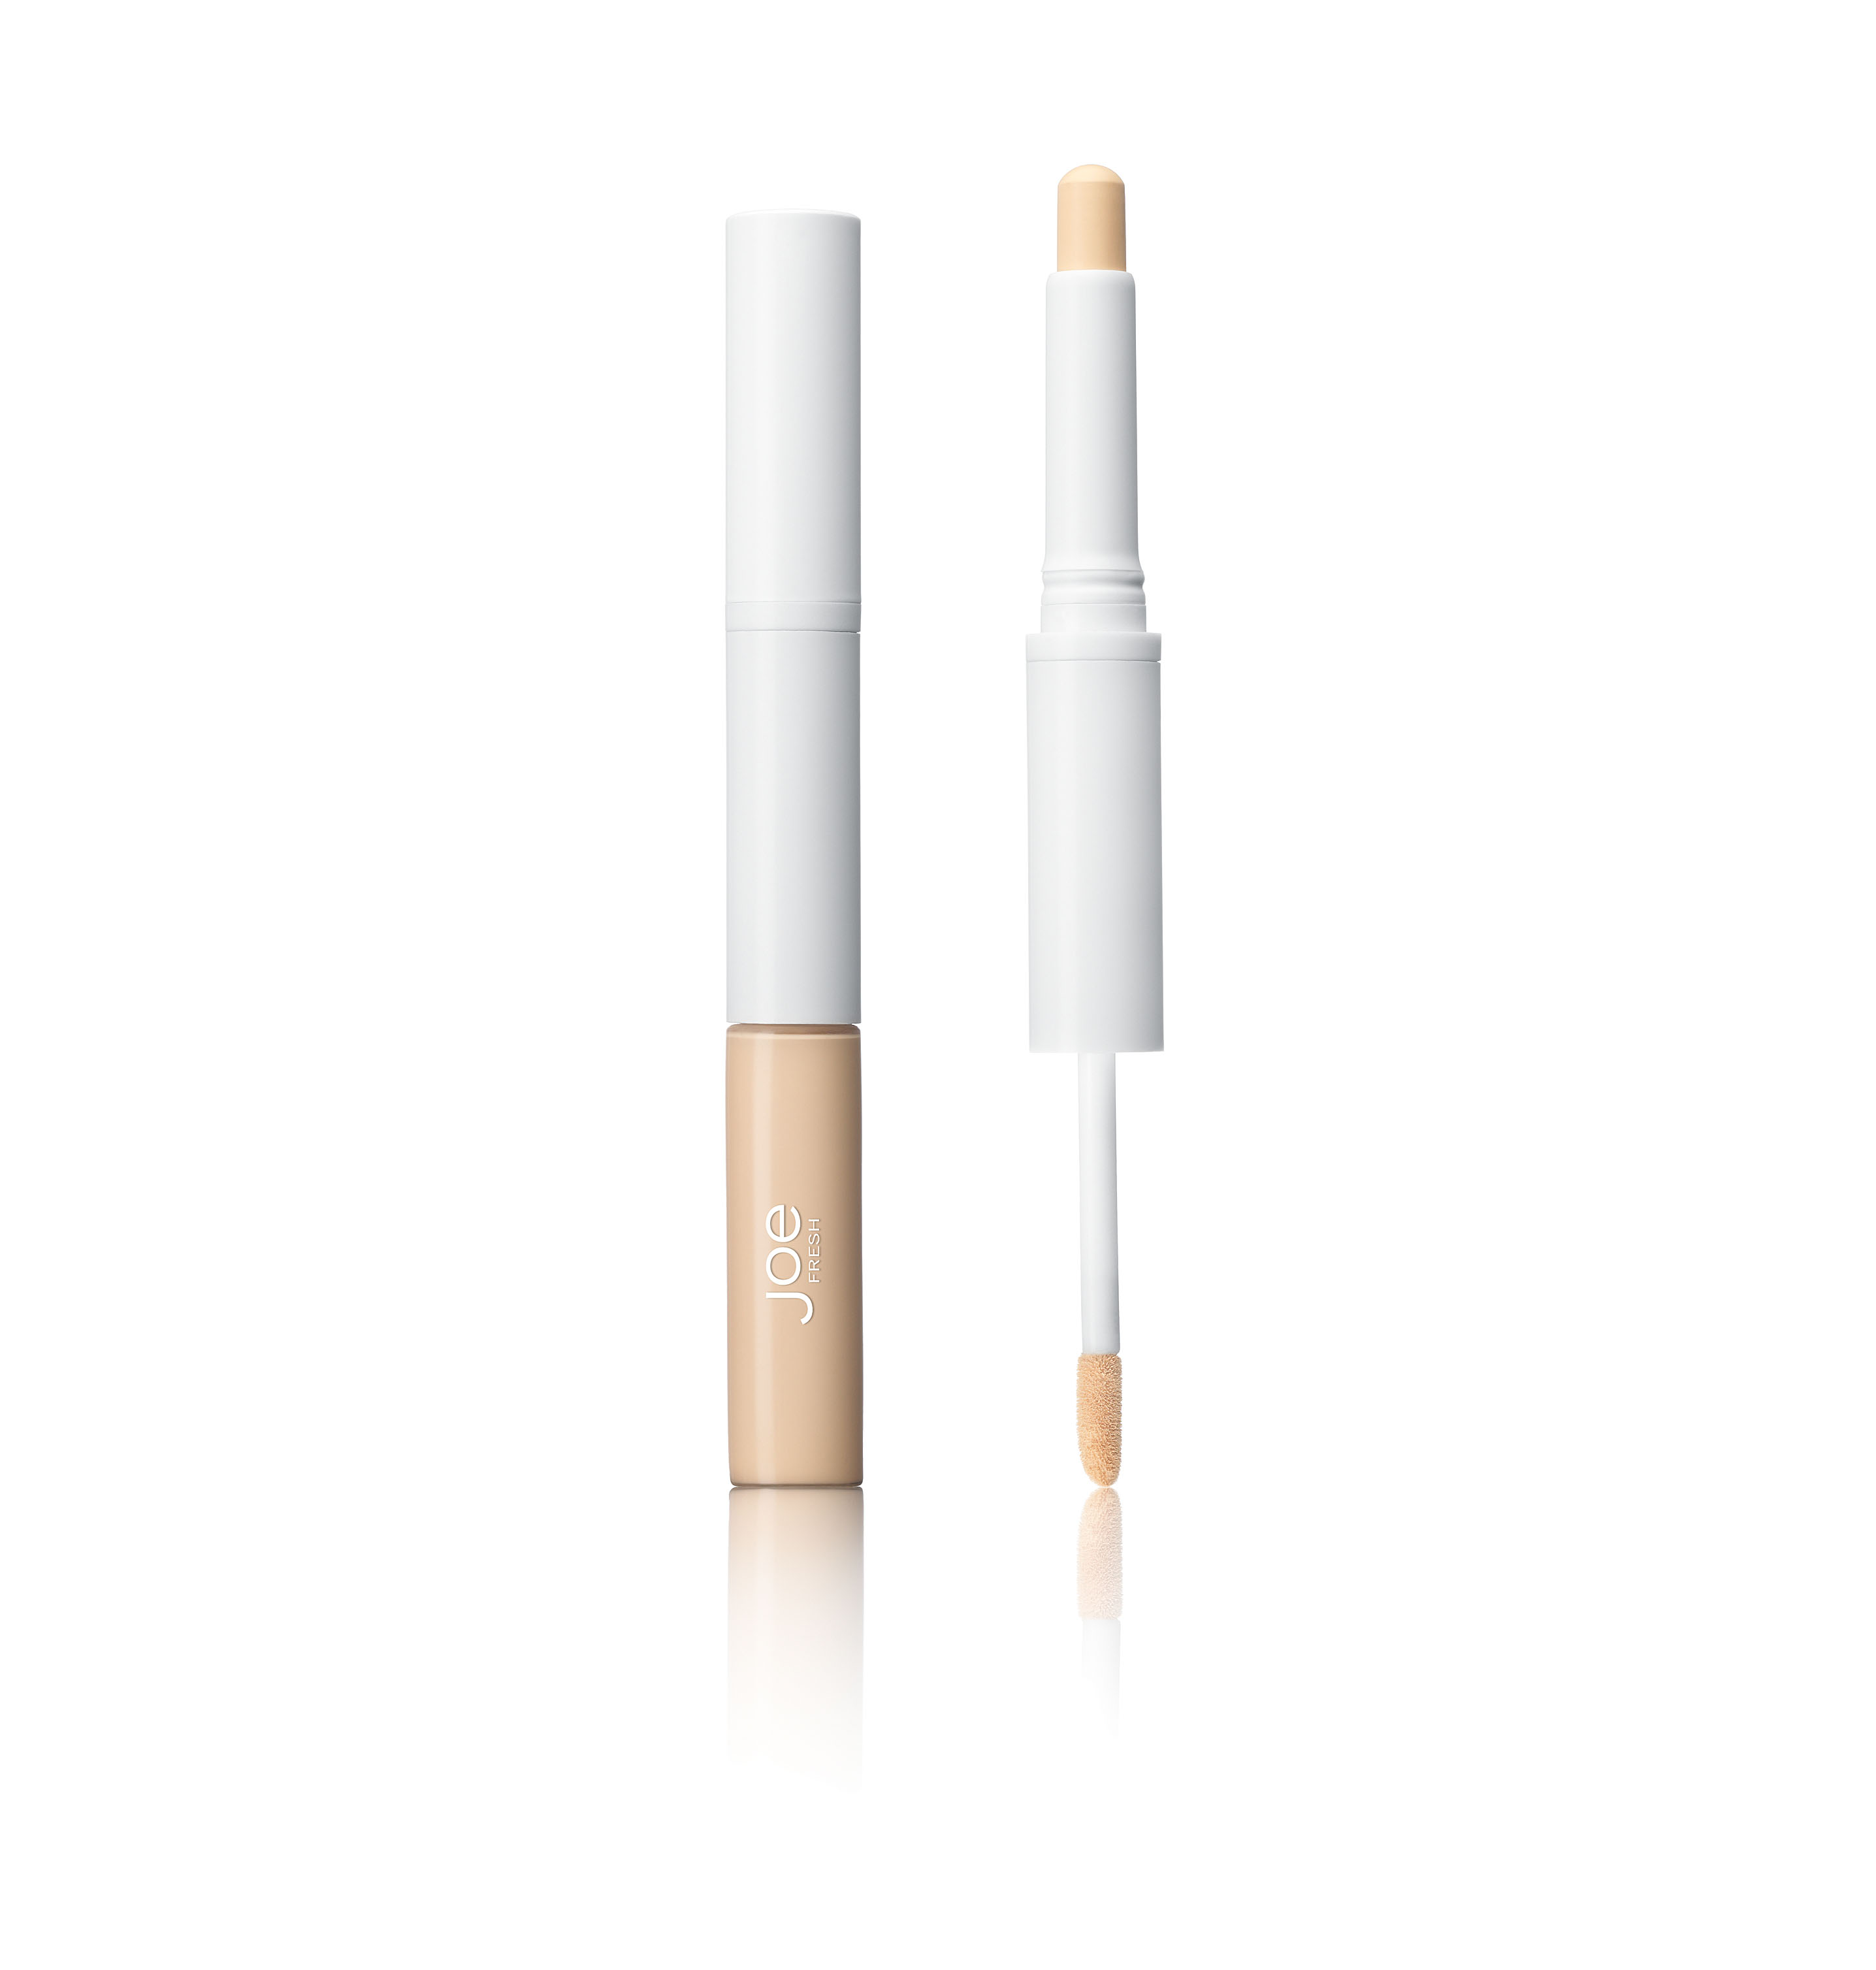 Beauty Face Duo Concealer, Light High-res